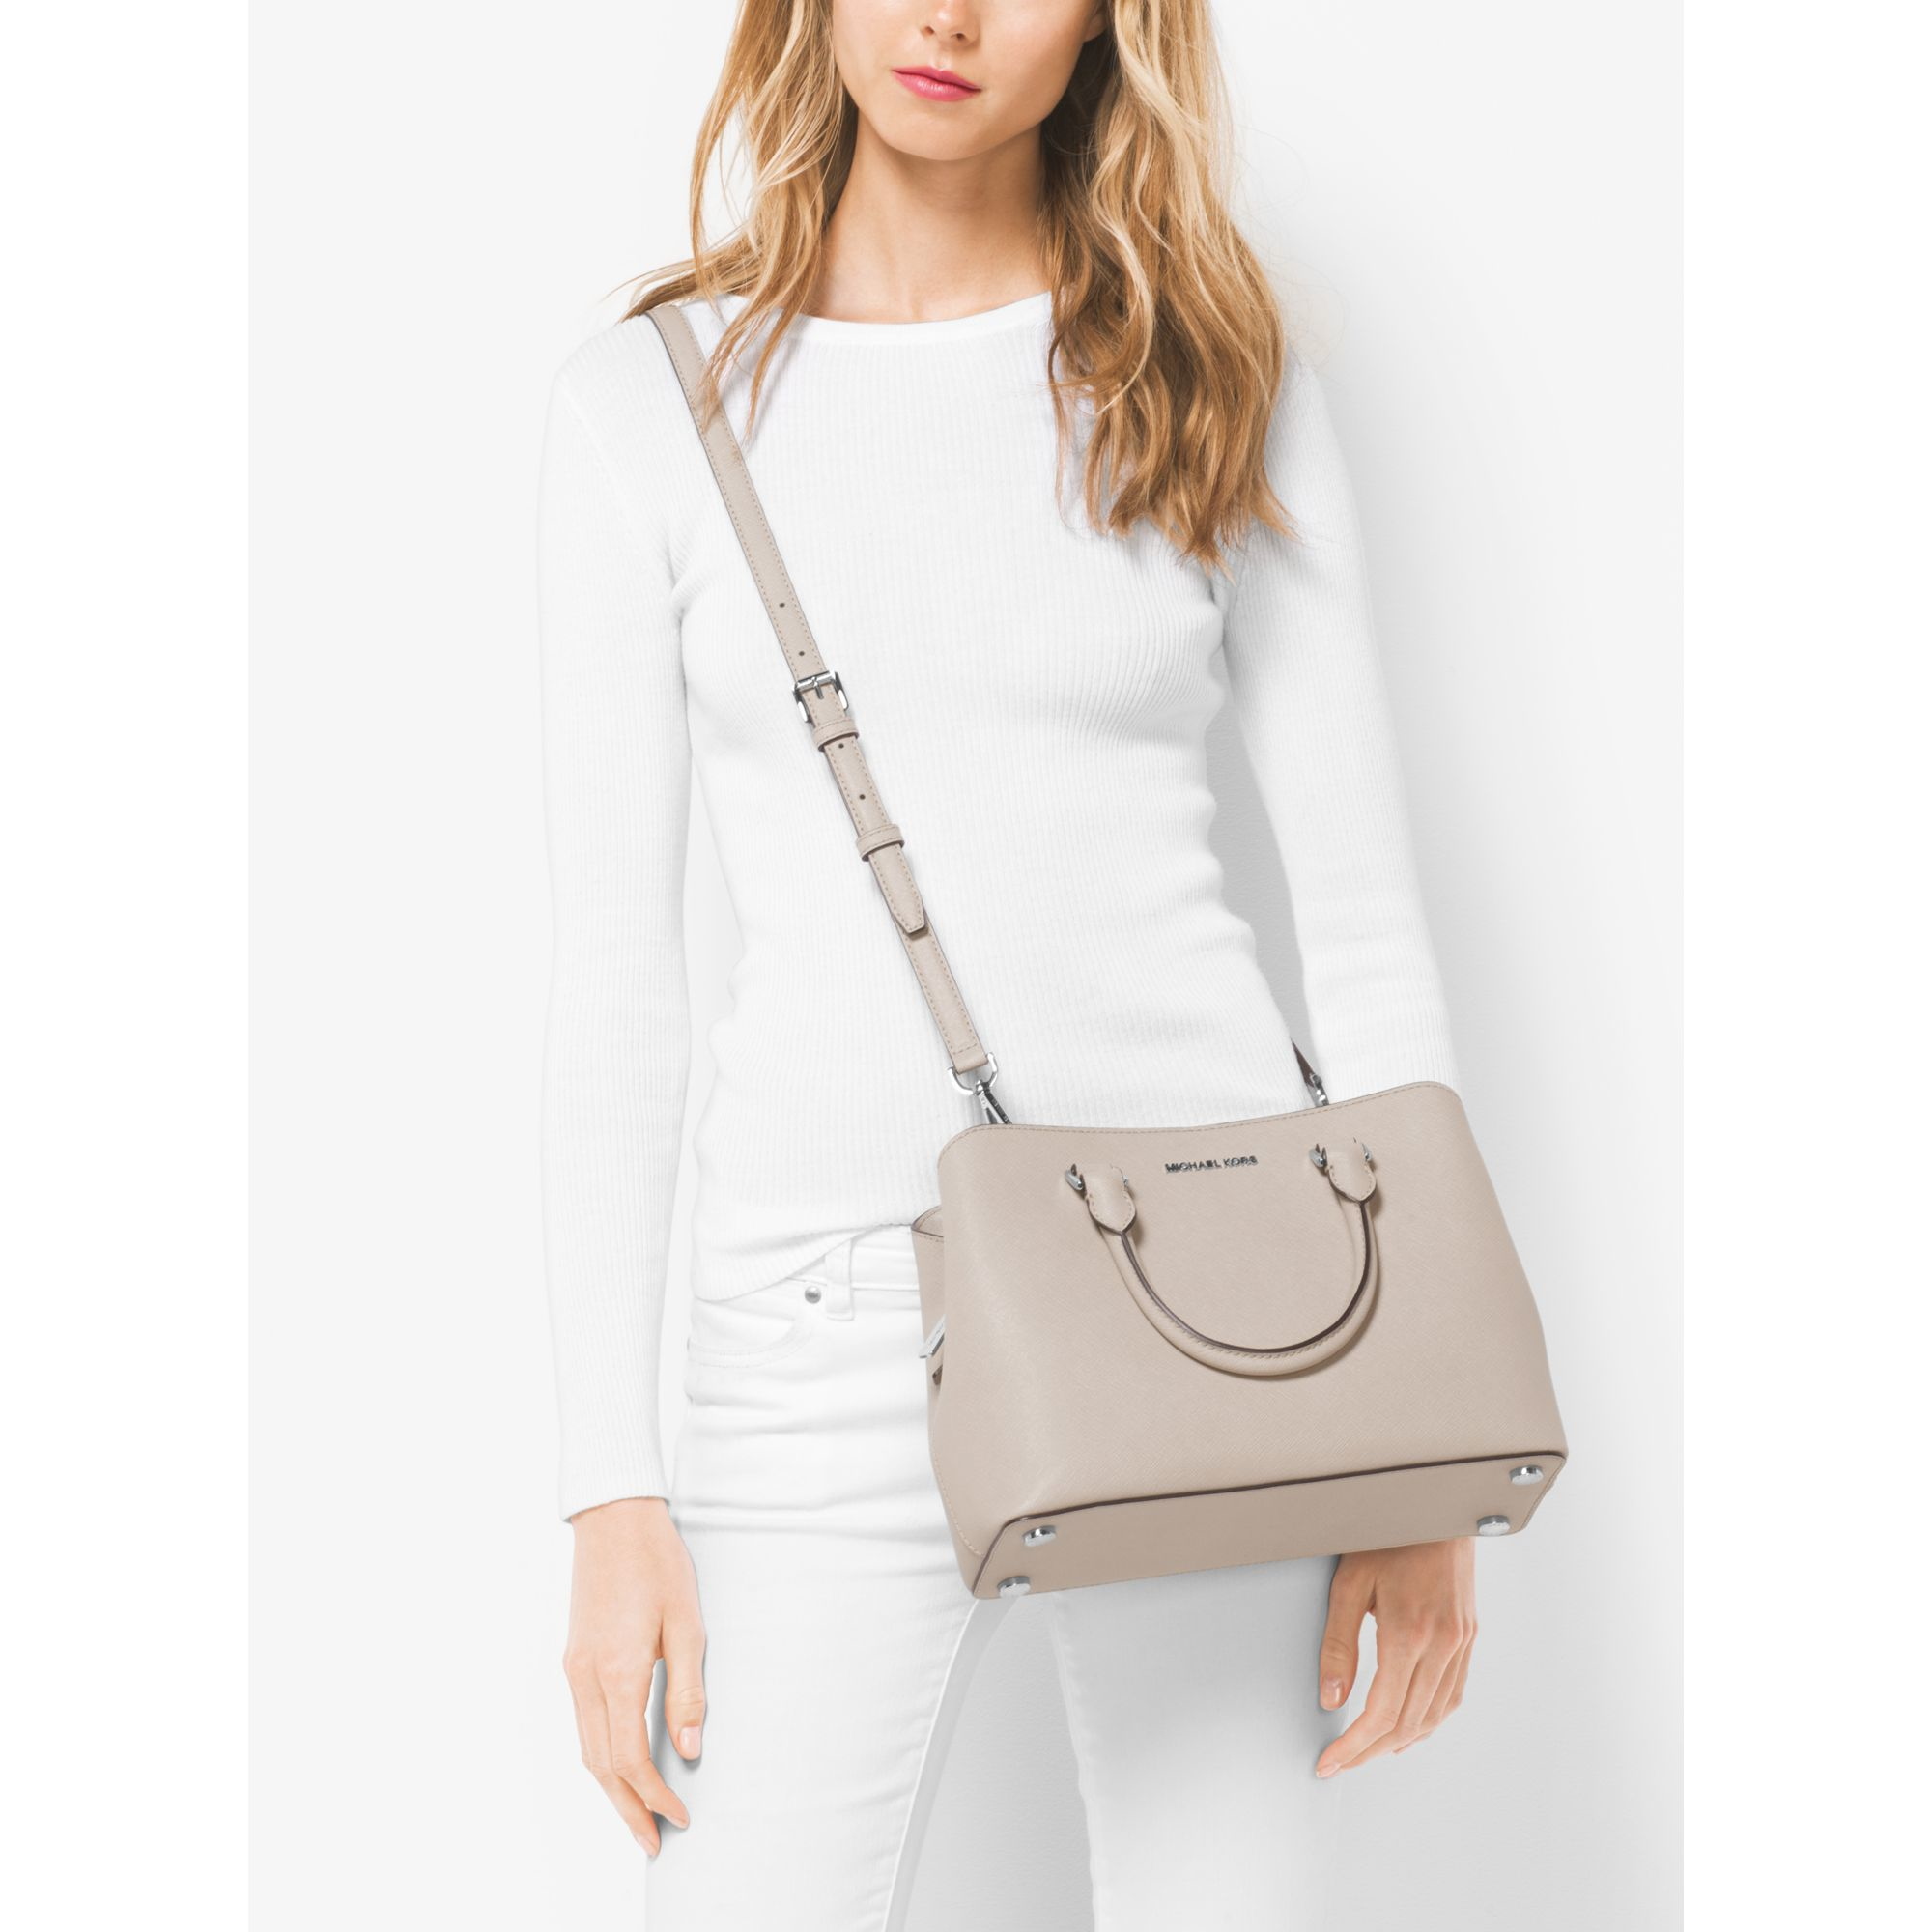 michael kors savannah medium saffiano leather satchel in gray lyst. Black Bedroom Furniture Sets. Home Design Ideas